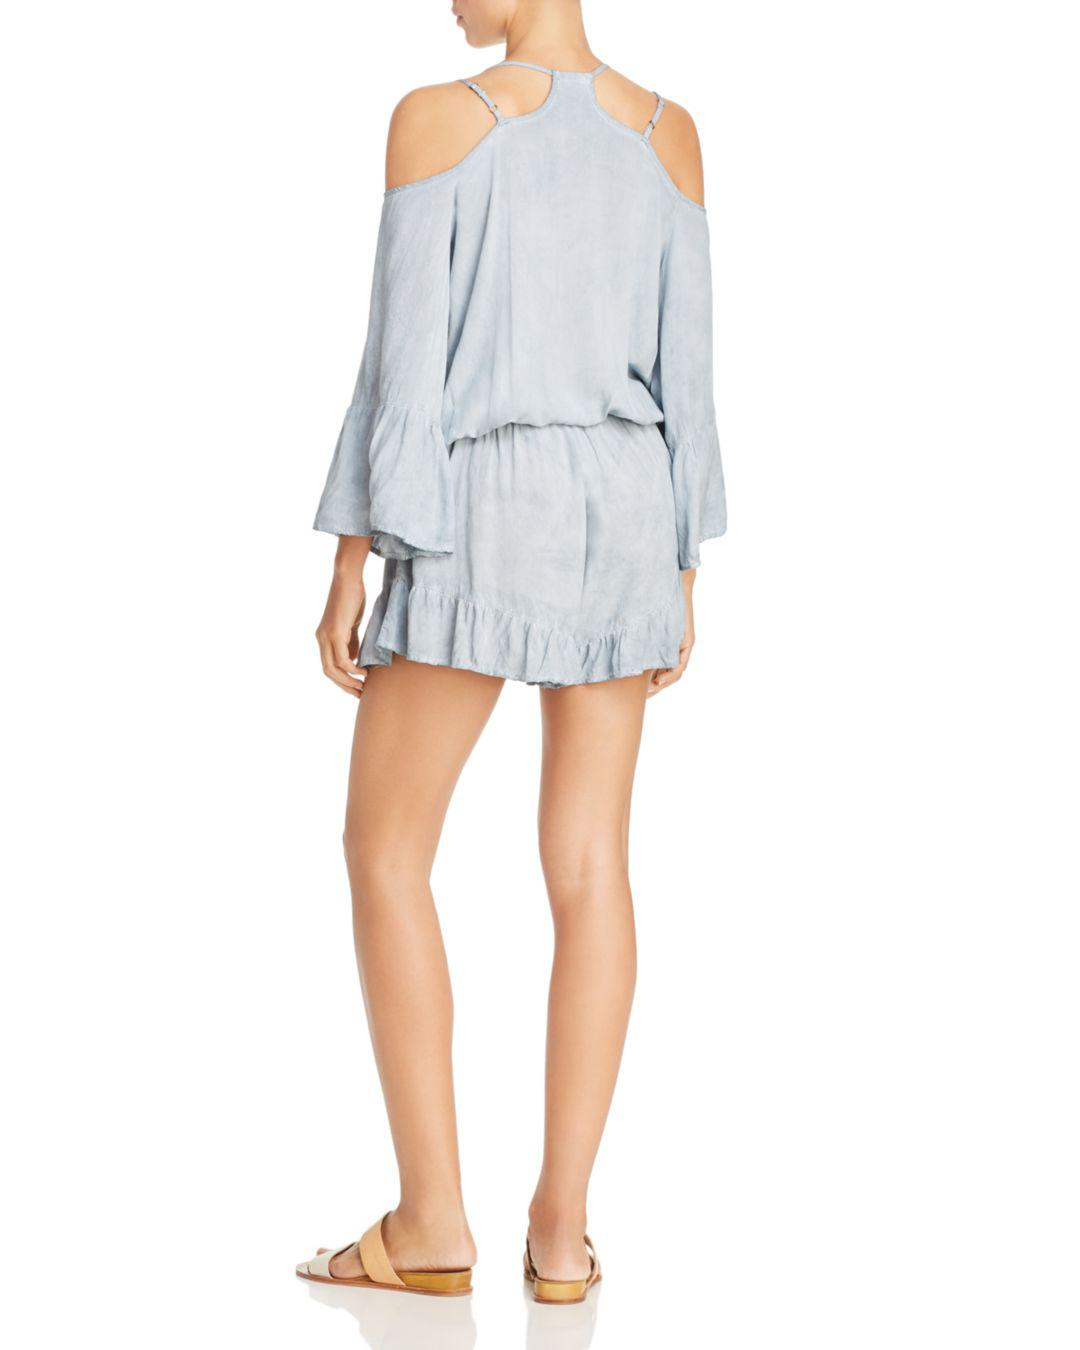 08ccdbc3fe Lyst - Surf Gypsy Washed Denim & Crochet Lace Pleated Romper Swim Cover-up  in Blue